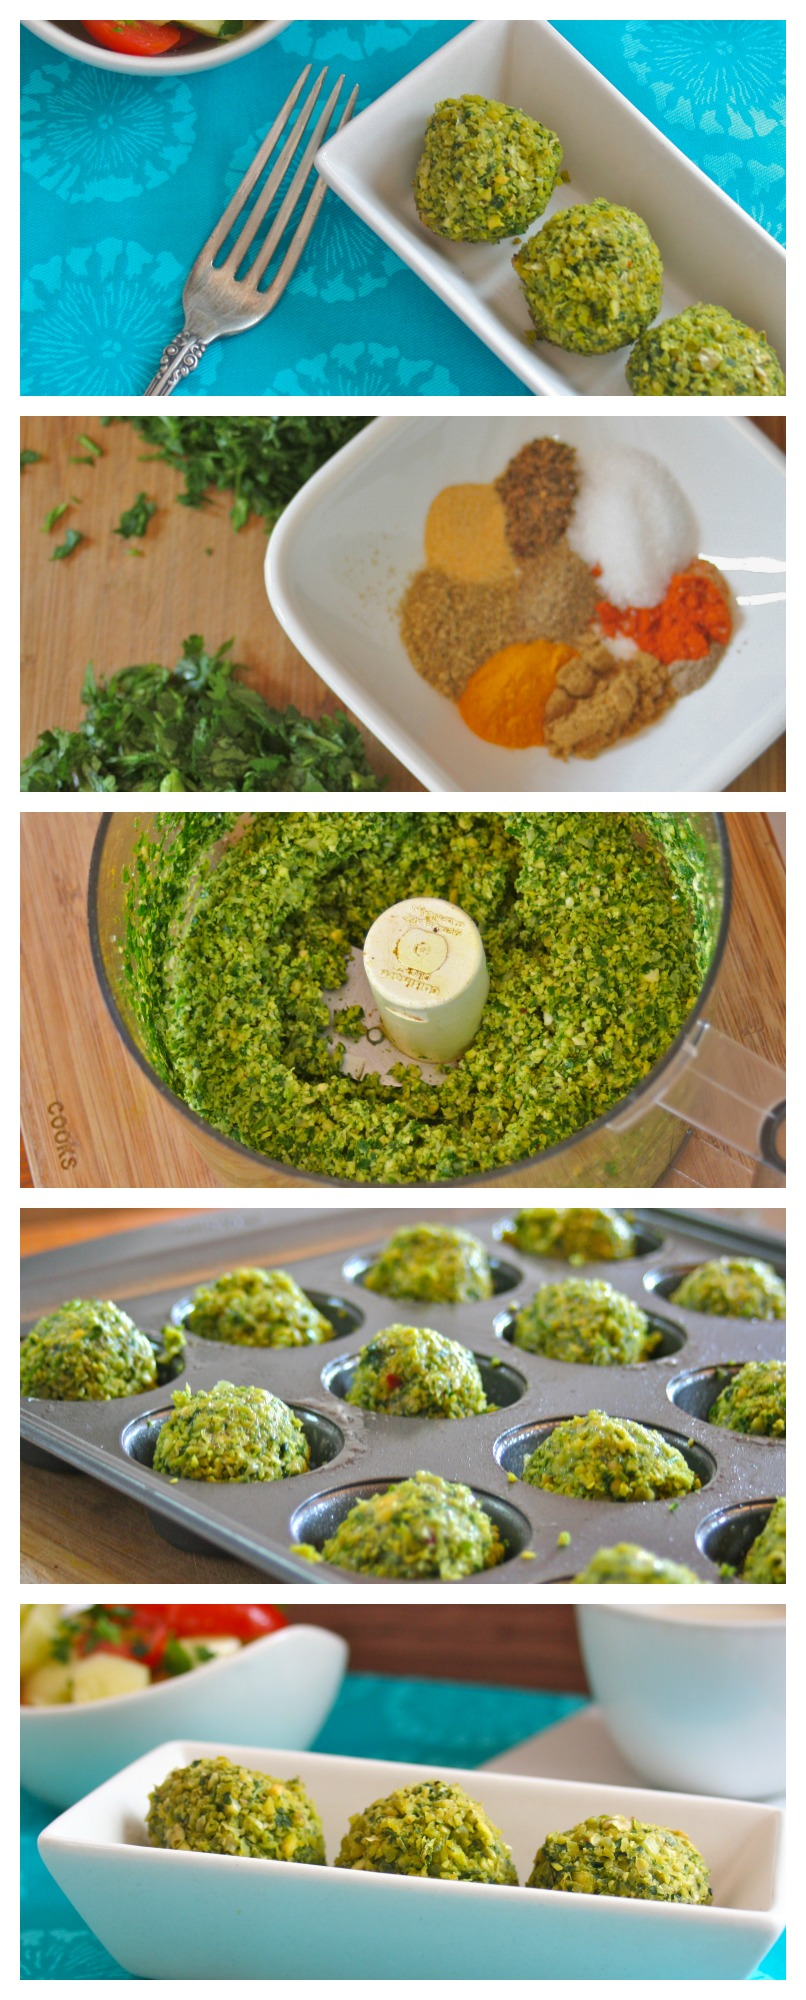 Would  you like to try a different vegetarian dish for your next Super Bowl party,  get together, potluck dinner or meatless Monday?  Give our Green Baked Falafel a try. You'll love it. This green Baked Falafel recipe is guilt free, vegan, vegetarian, gluten free, kosher, super flavorful and easy to make.  It is always fun to make recipes using a muffin tin.